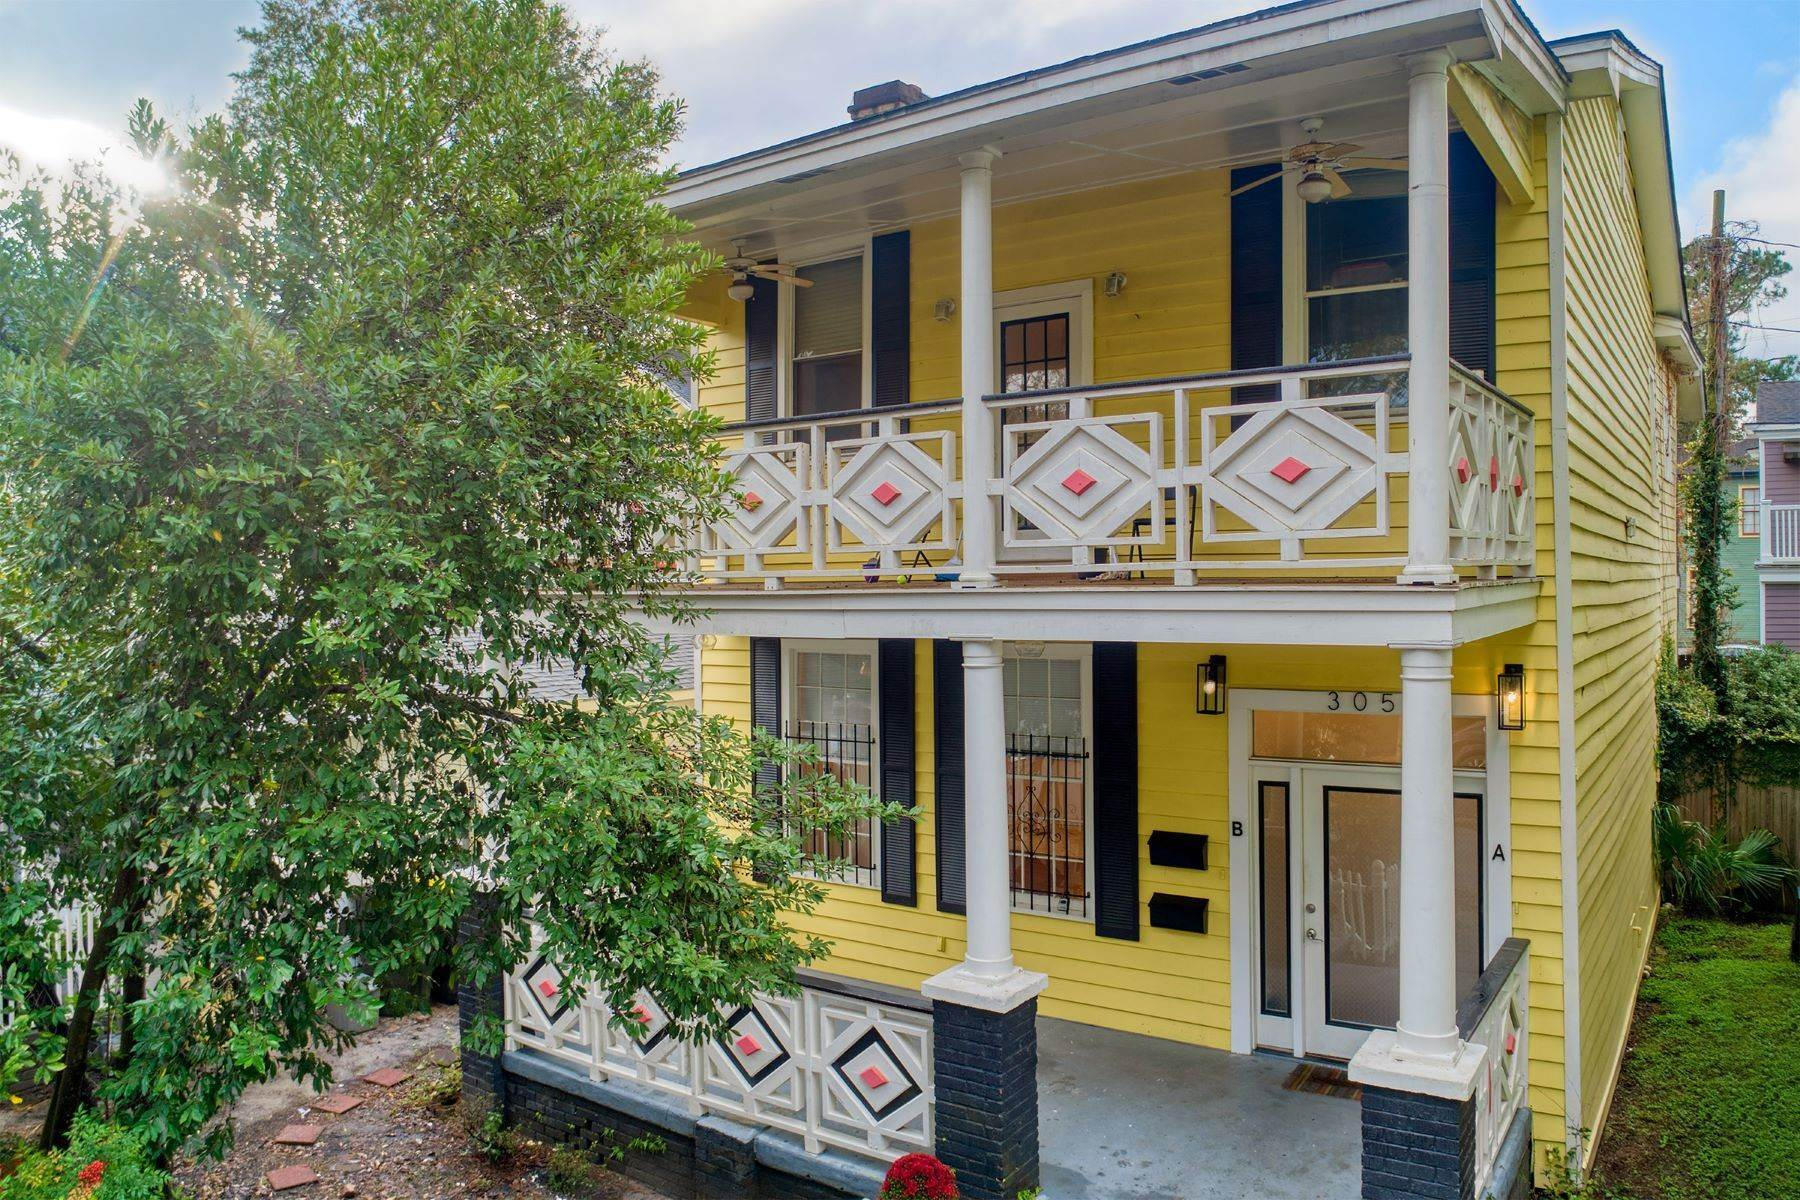 Duplex Homes for Sale at 305 E 32nd Street Savannah, Georgia 31401 United States